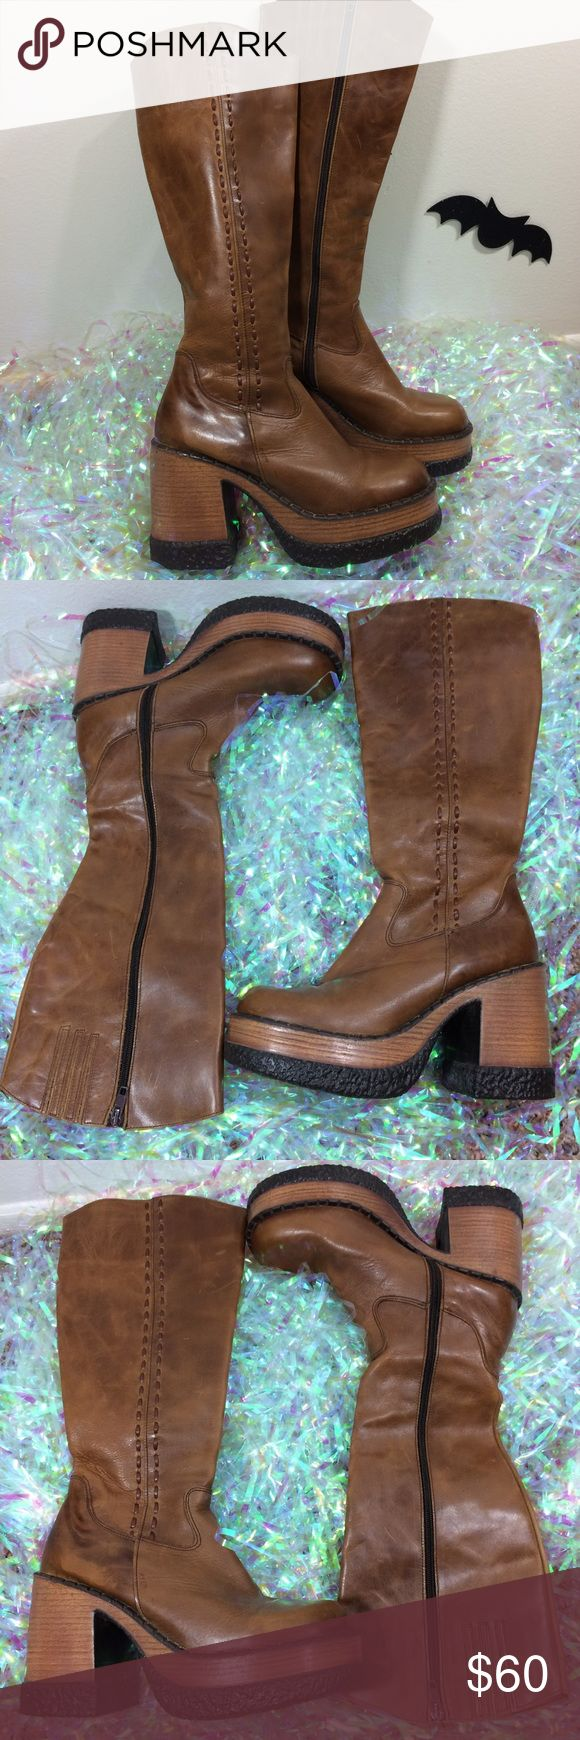 """Vintage London Underground Brown Leather Boots Vintage London Underground Tall Distressed Brown Leather Platform Heel Boots. Made in Spain 🇪🇸Marked 7. Signs of wear. Normal creasing.   Insole - 10.25"""" Heel - 4""""  *I'm not responsible for the fit of an item*  🚫 I don't discuss prices through comments, please use the offer button!  ⚡️ Same-day or next-day shipping 📬 All packages handled with care 📦 Bundle 2+ items for a discount 👽 Follow for new items & sale updates 🏡 Pet-free…"""